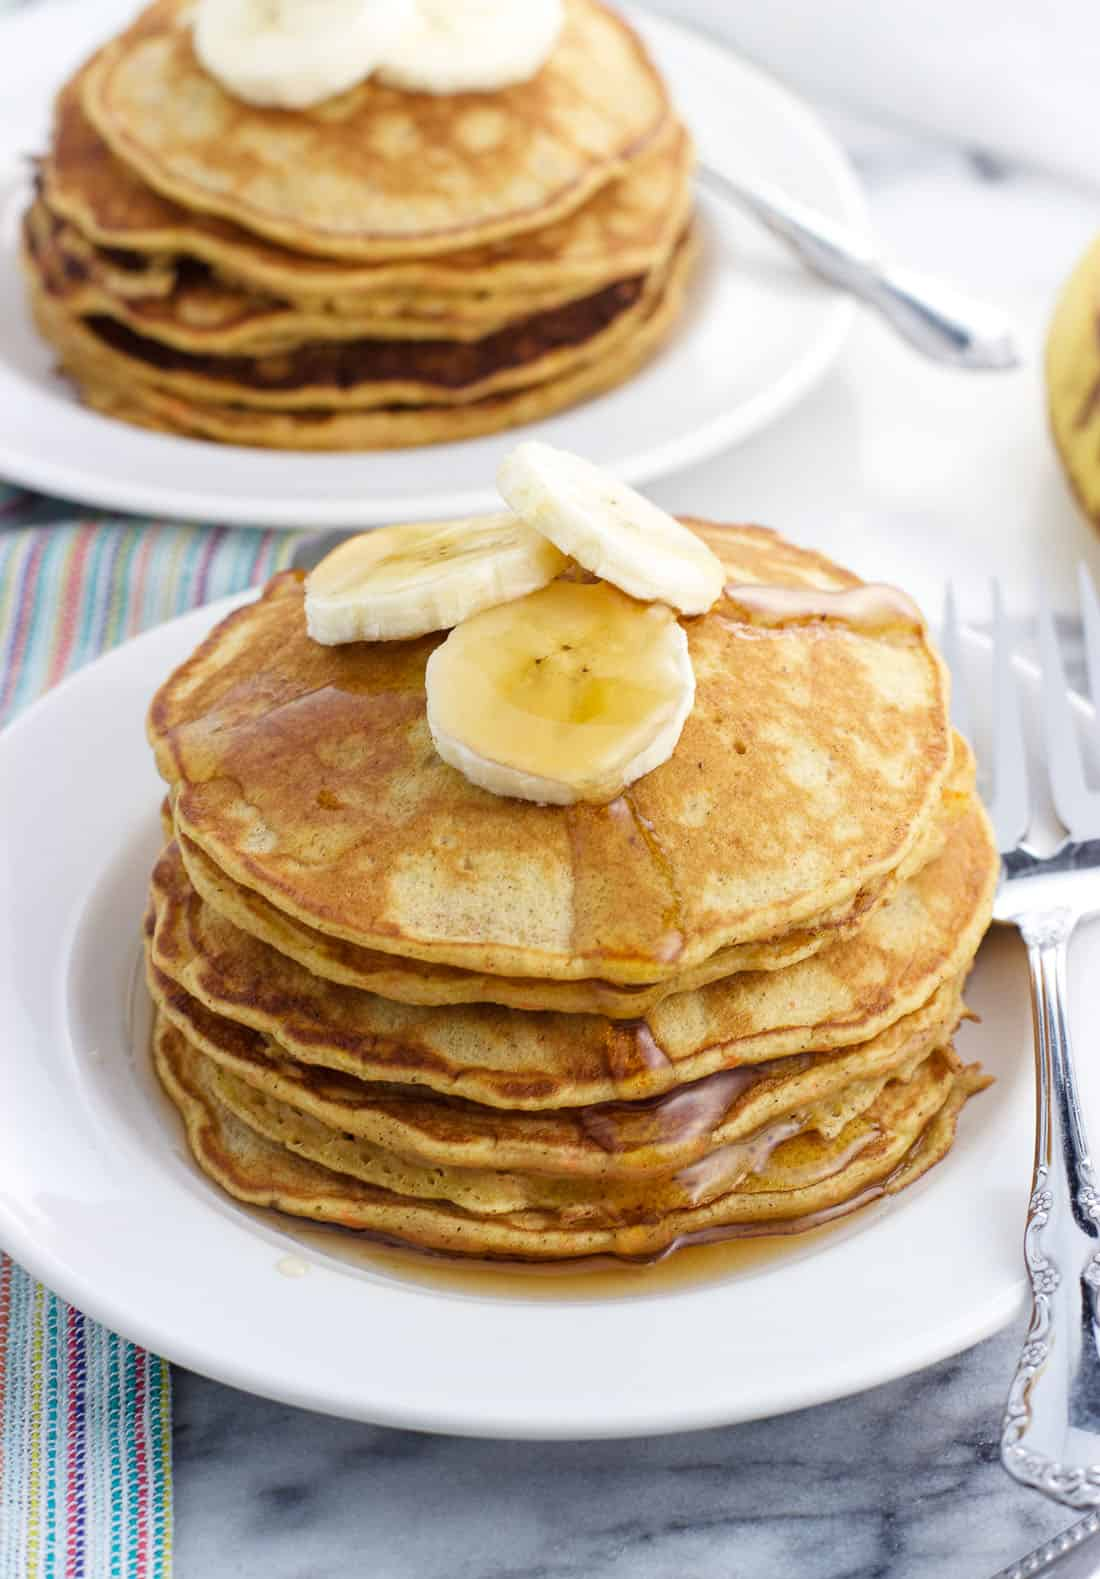 A stack of pancakes topped with maple syrup and banana slices on a small plate, with another plate of pancakes in the background